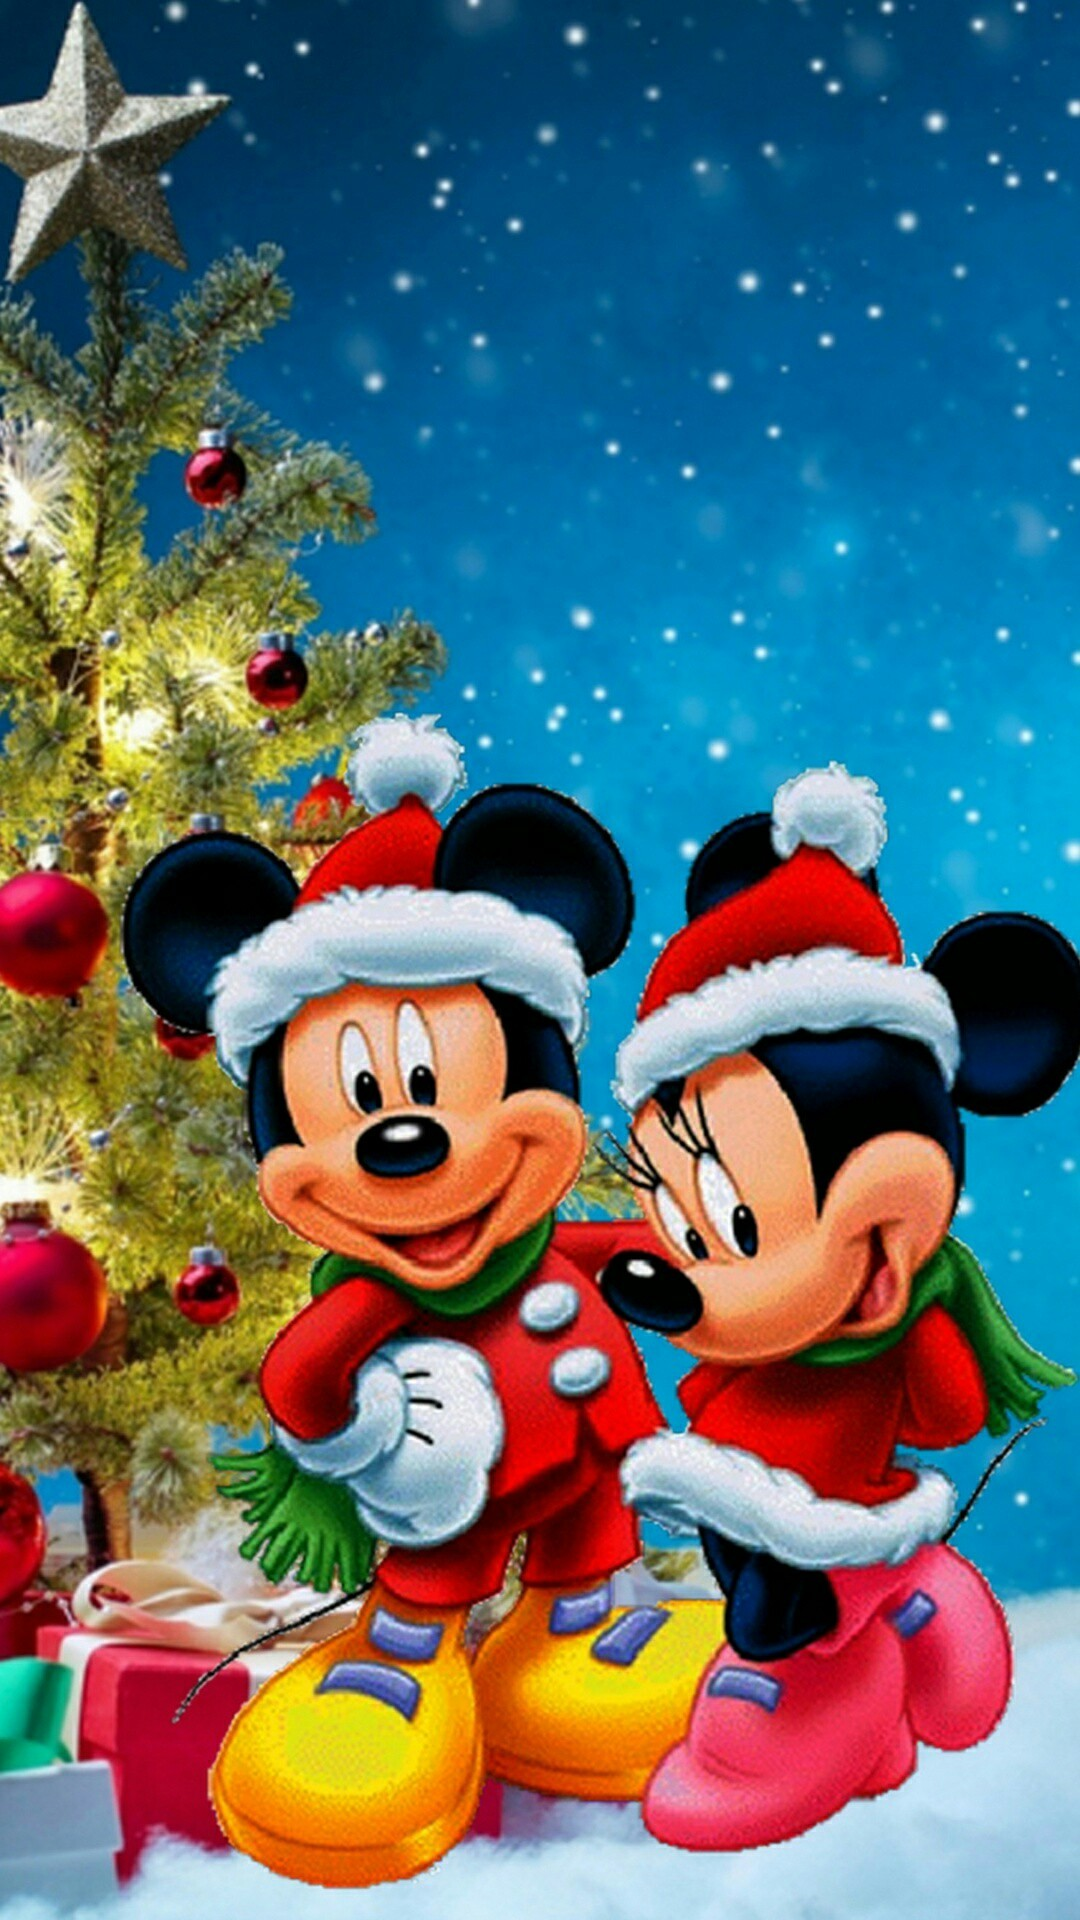 Mickey Mouse Christmas Wallpaper the best 64 images in 2018